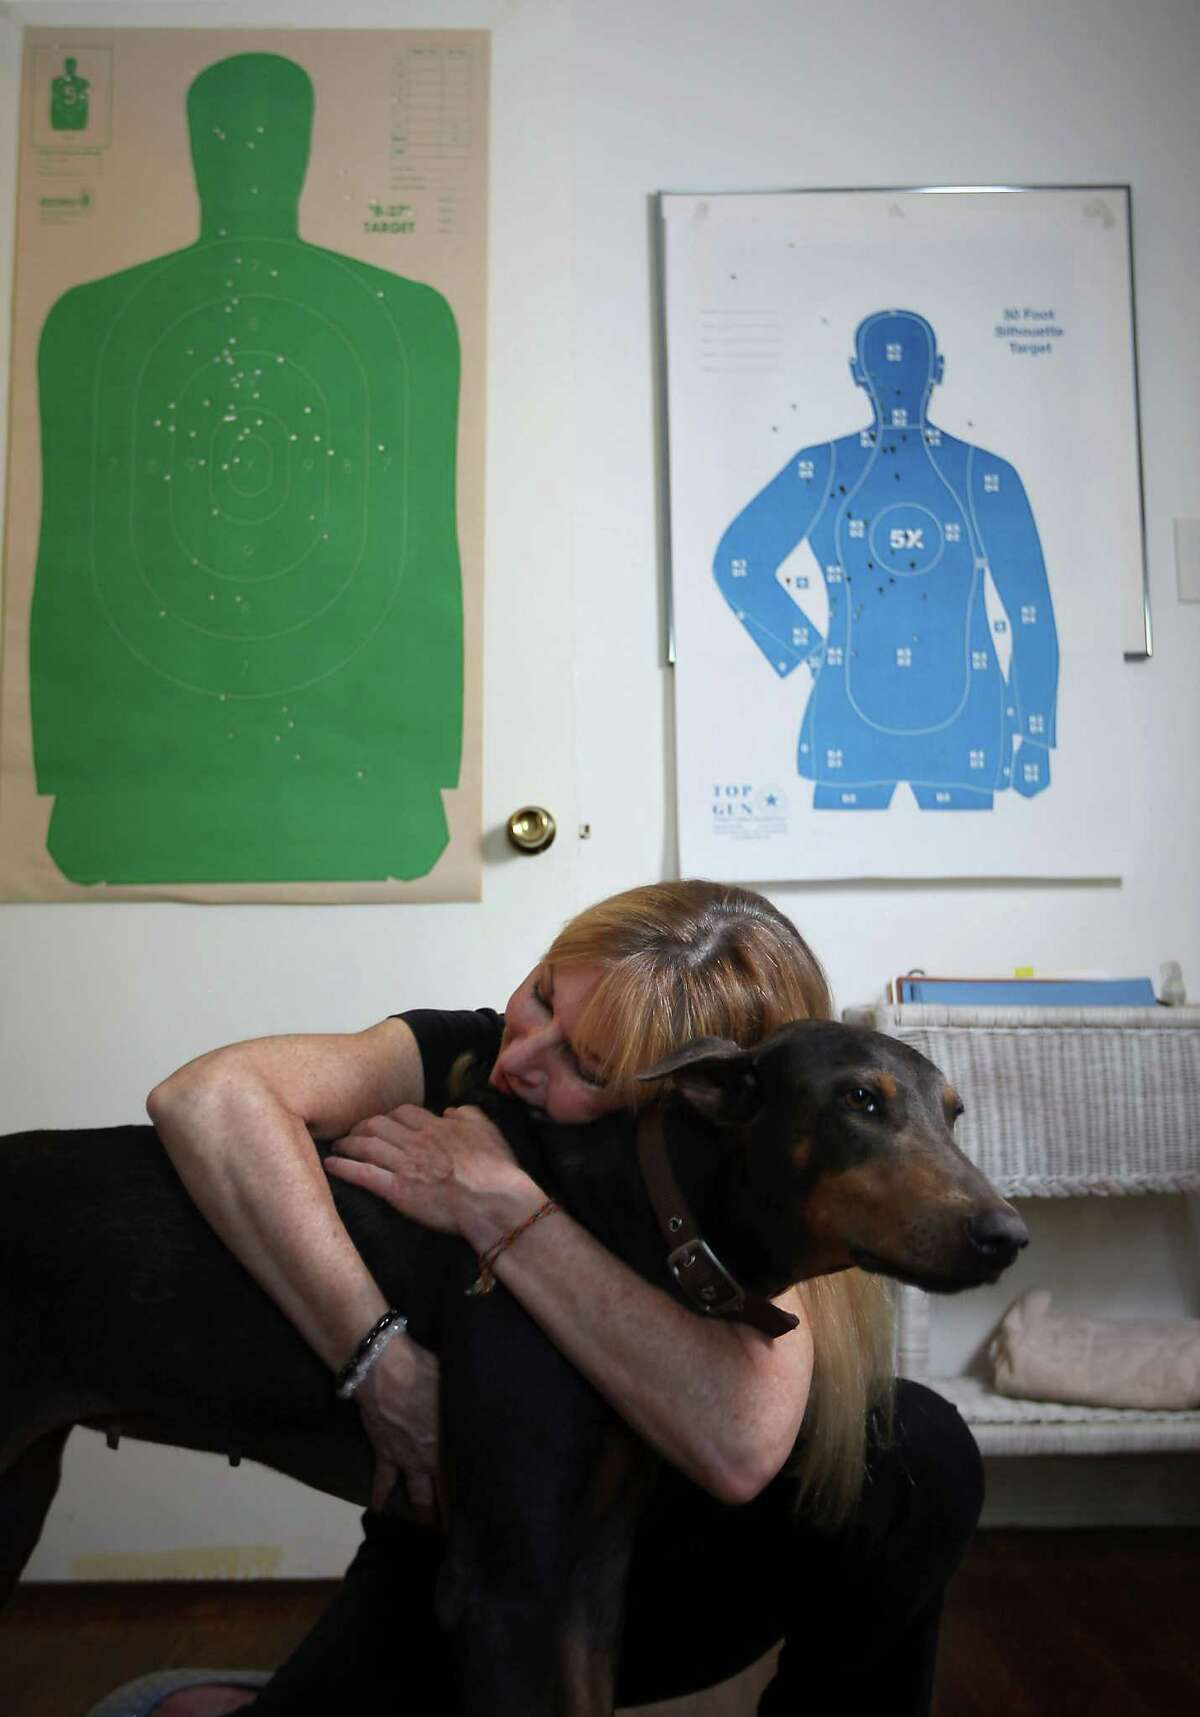 Geffin hugs her new dog in her home. Behind her are paper silhouettes she has used for target practice.